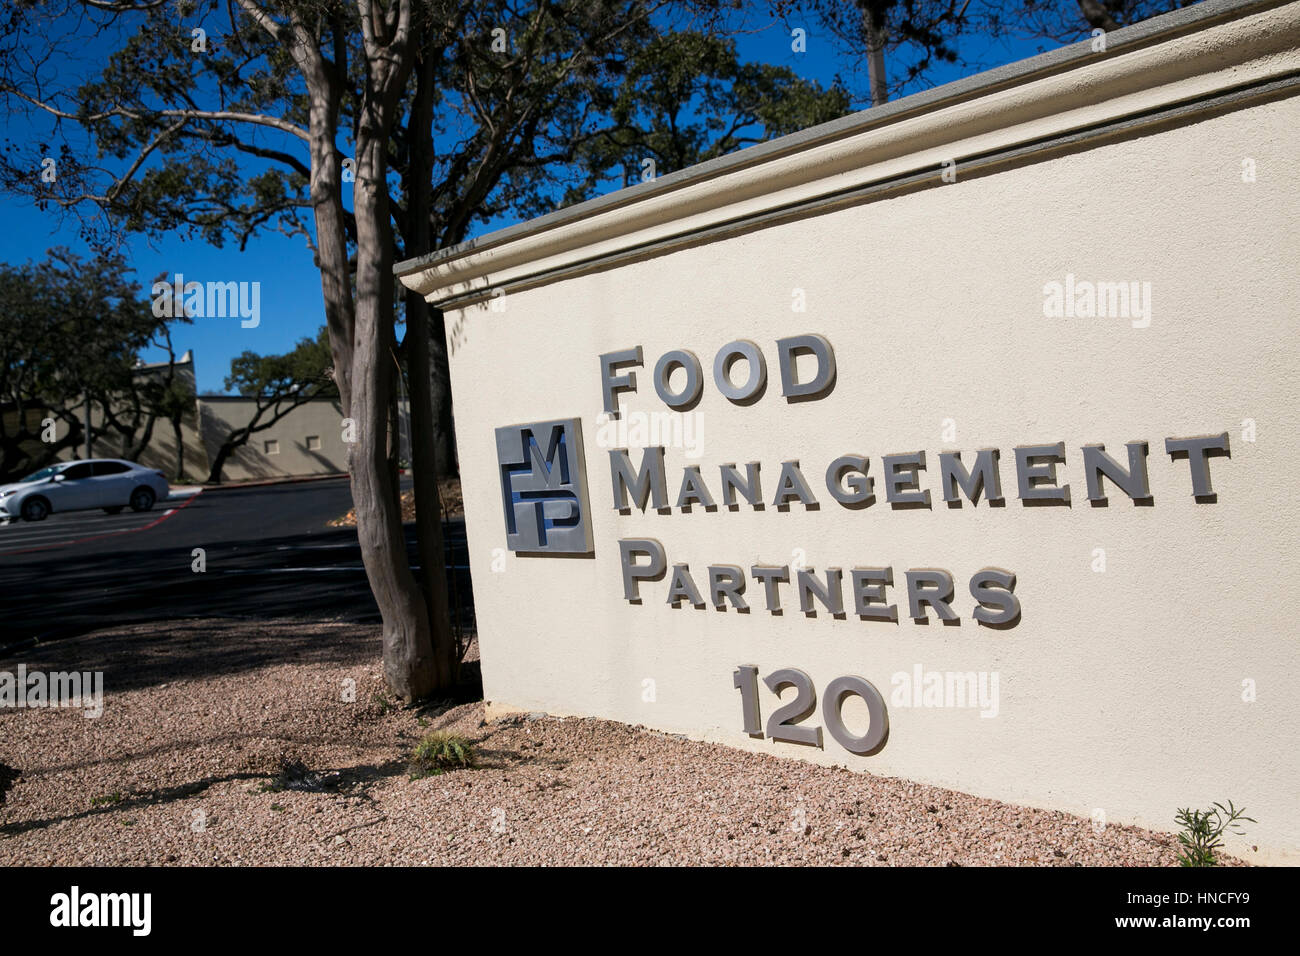 A logo sign outside of the headquarters of Food Management Partners in San Antonio, Texas on January 29, 2017. - Stock Image